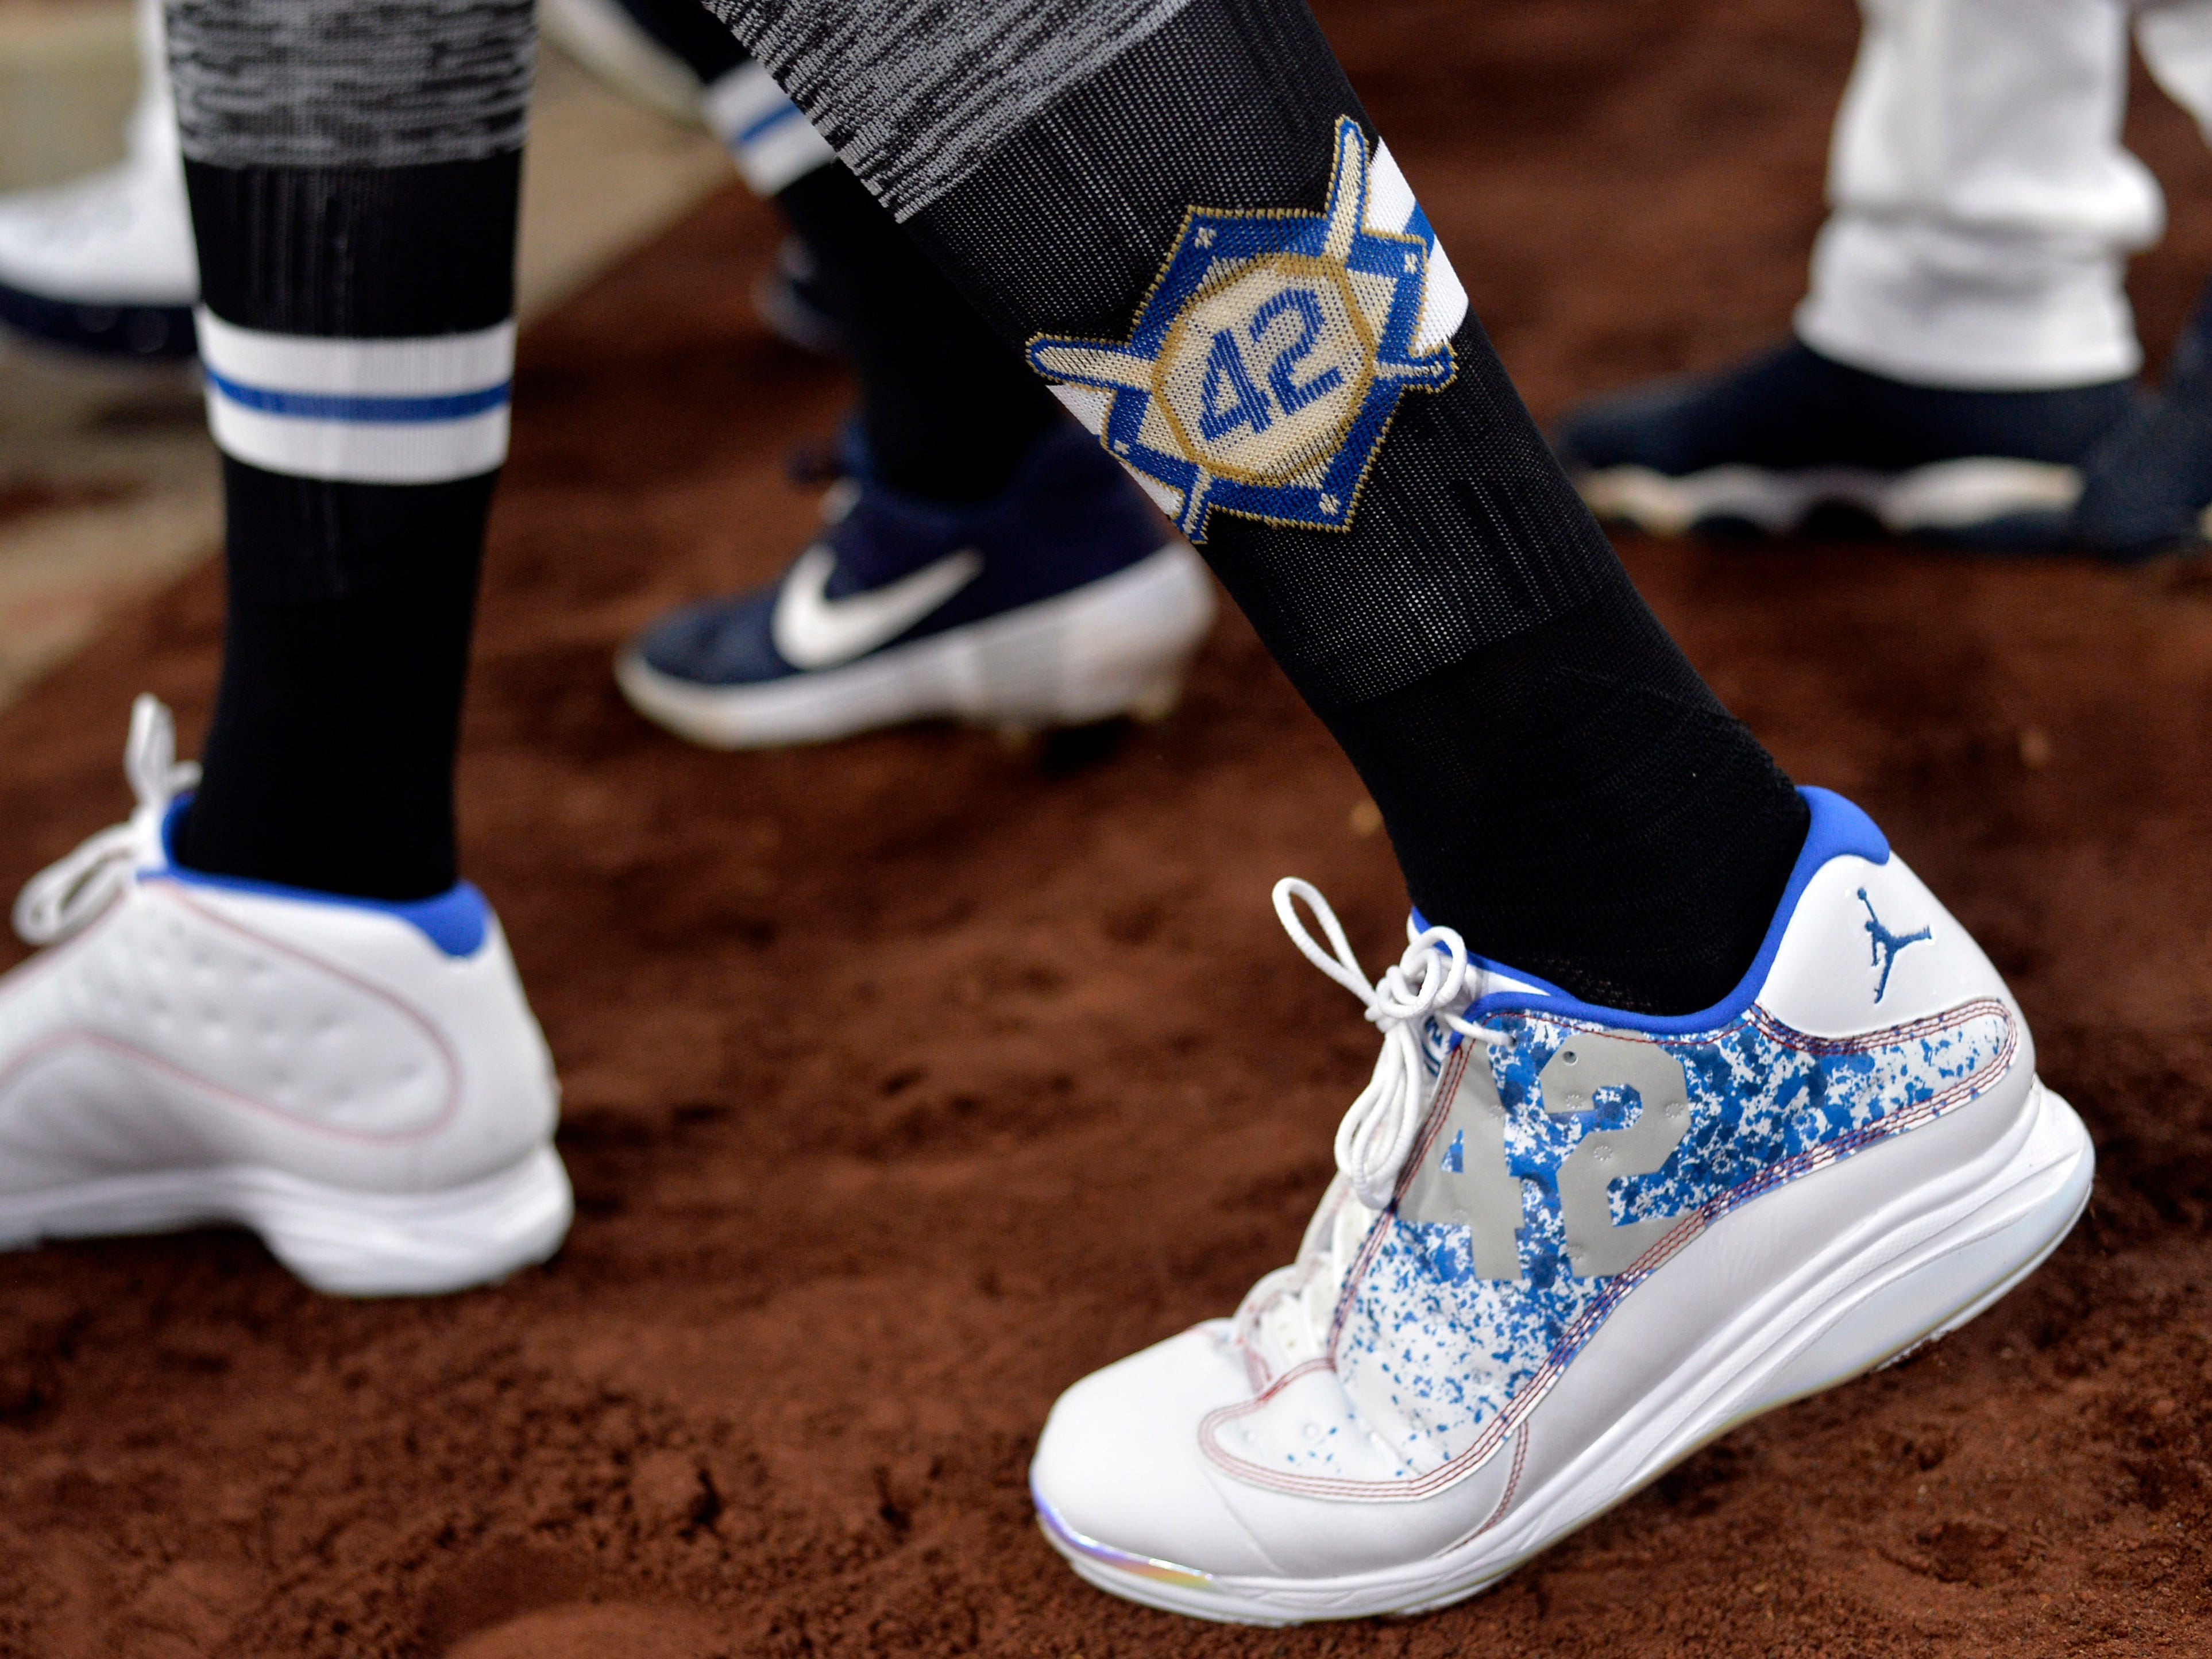 A detailed view of the cleats worn by San Diego Padres third baseman Manny Machado before the game against the Colorado Rockies at Petco Park.